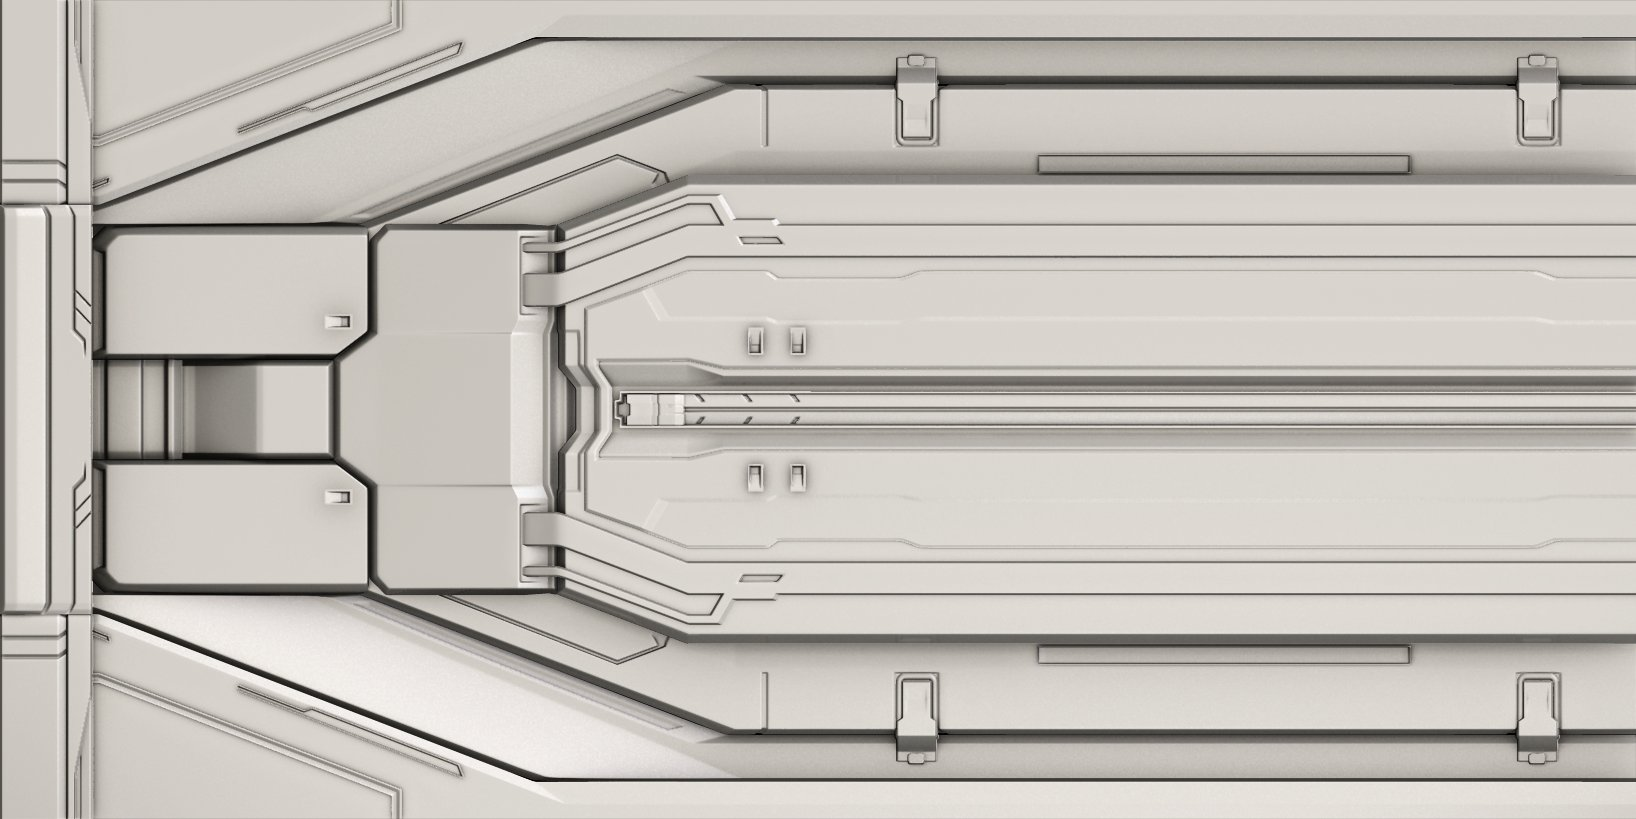 Render of a Forerunner panel